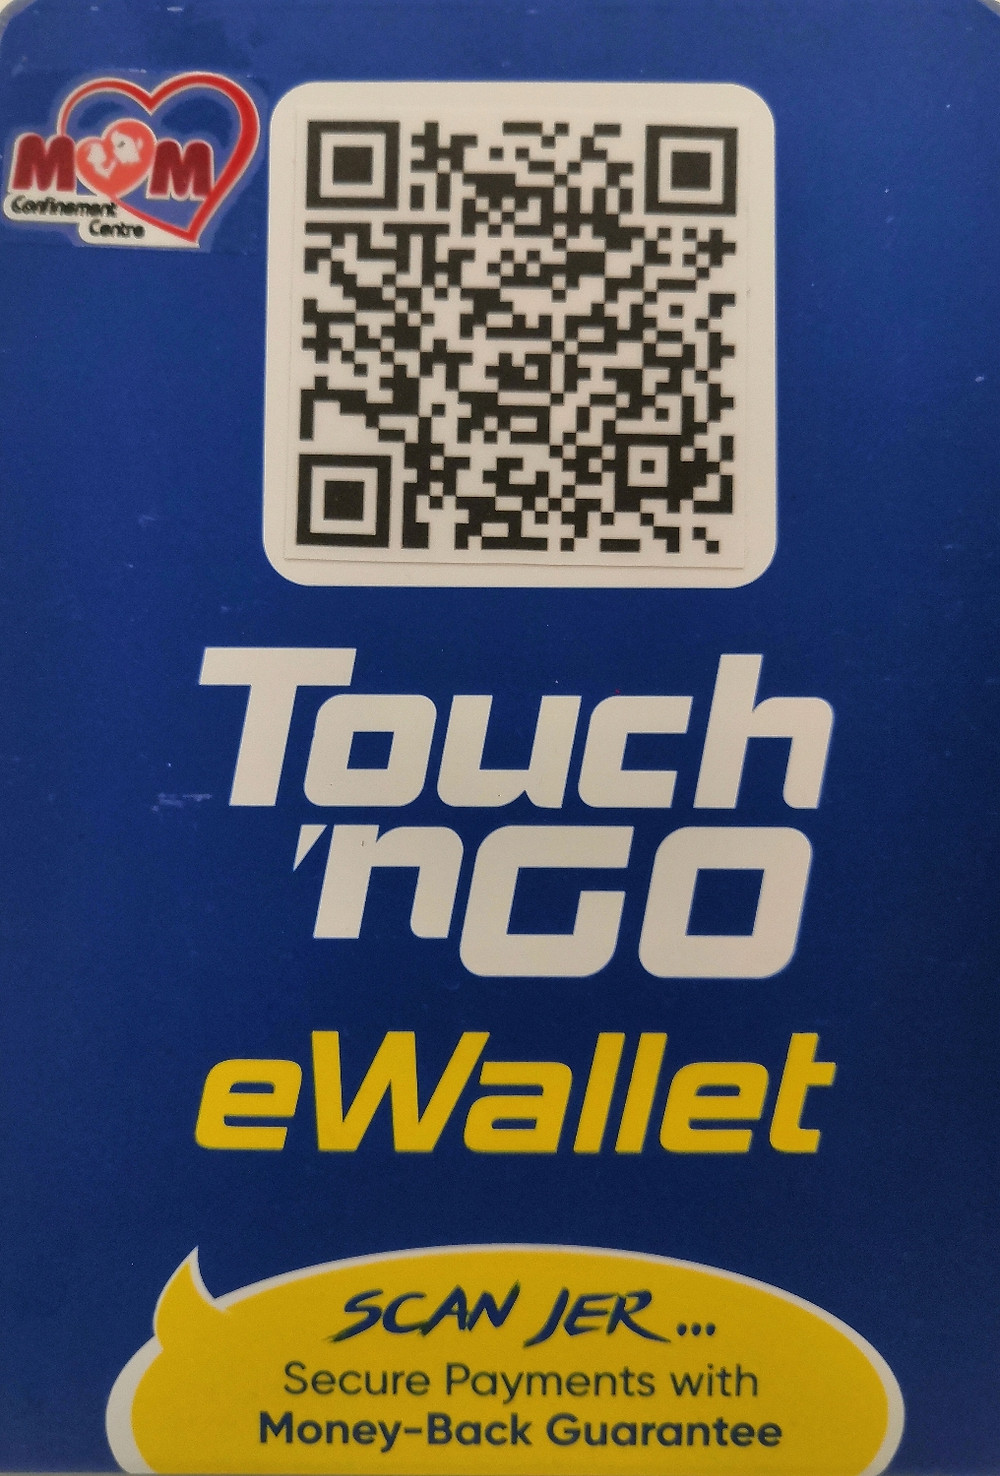 Touch N Go E Wallet Is Now Lovemum